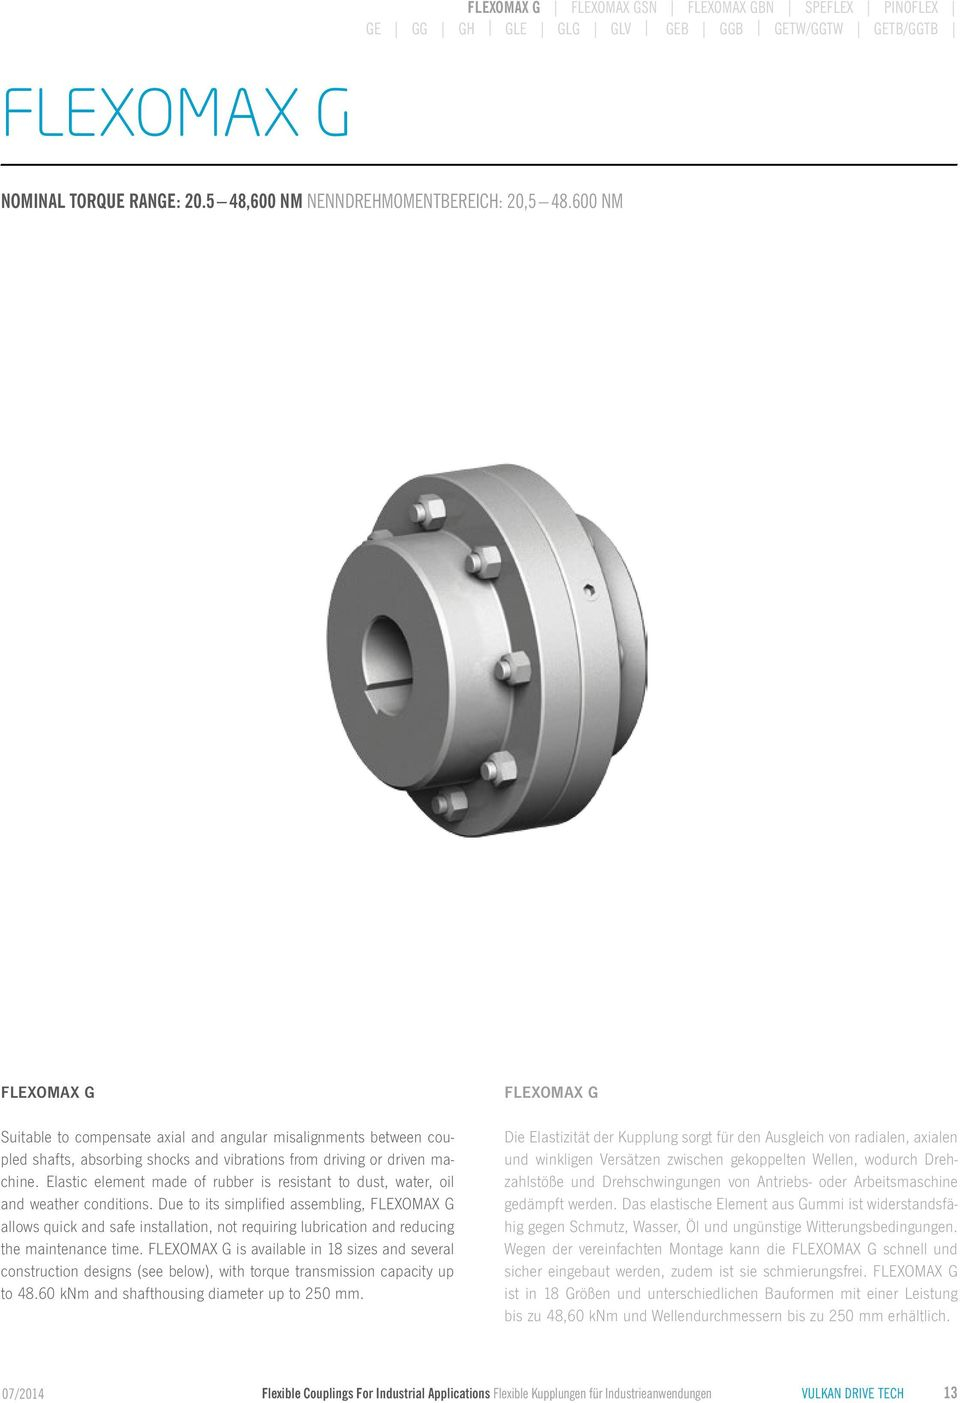 TECHNICAL DATA FLEXIBLE COUPLINGS FOR INDUSTRIAL